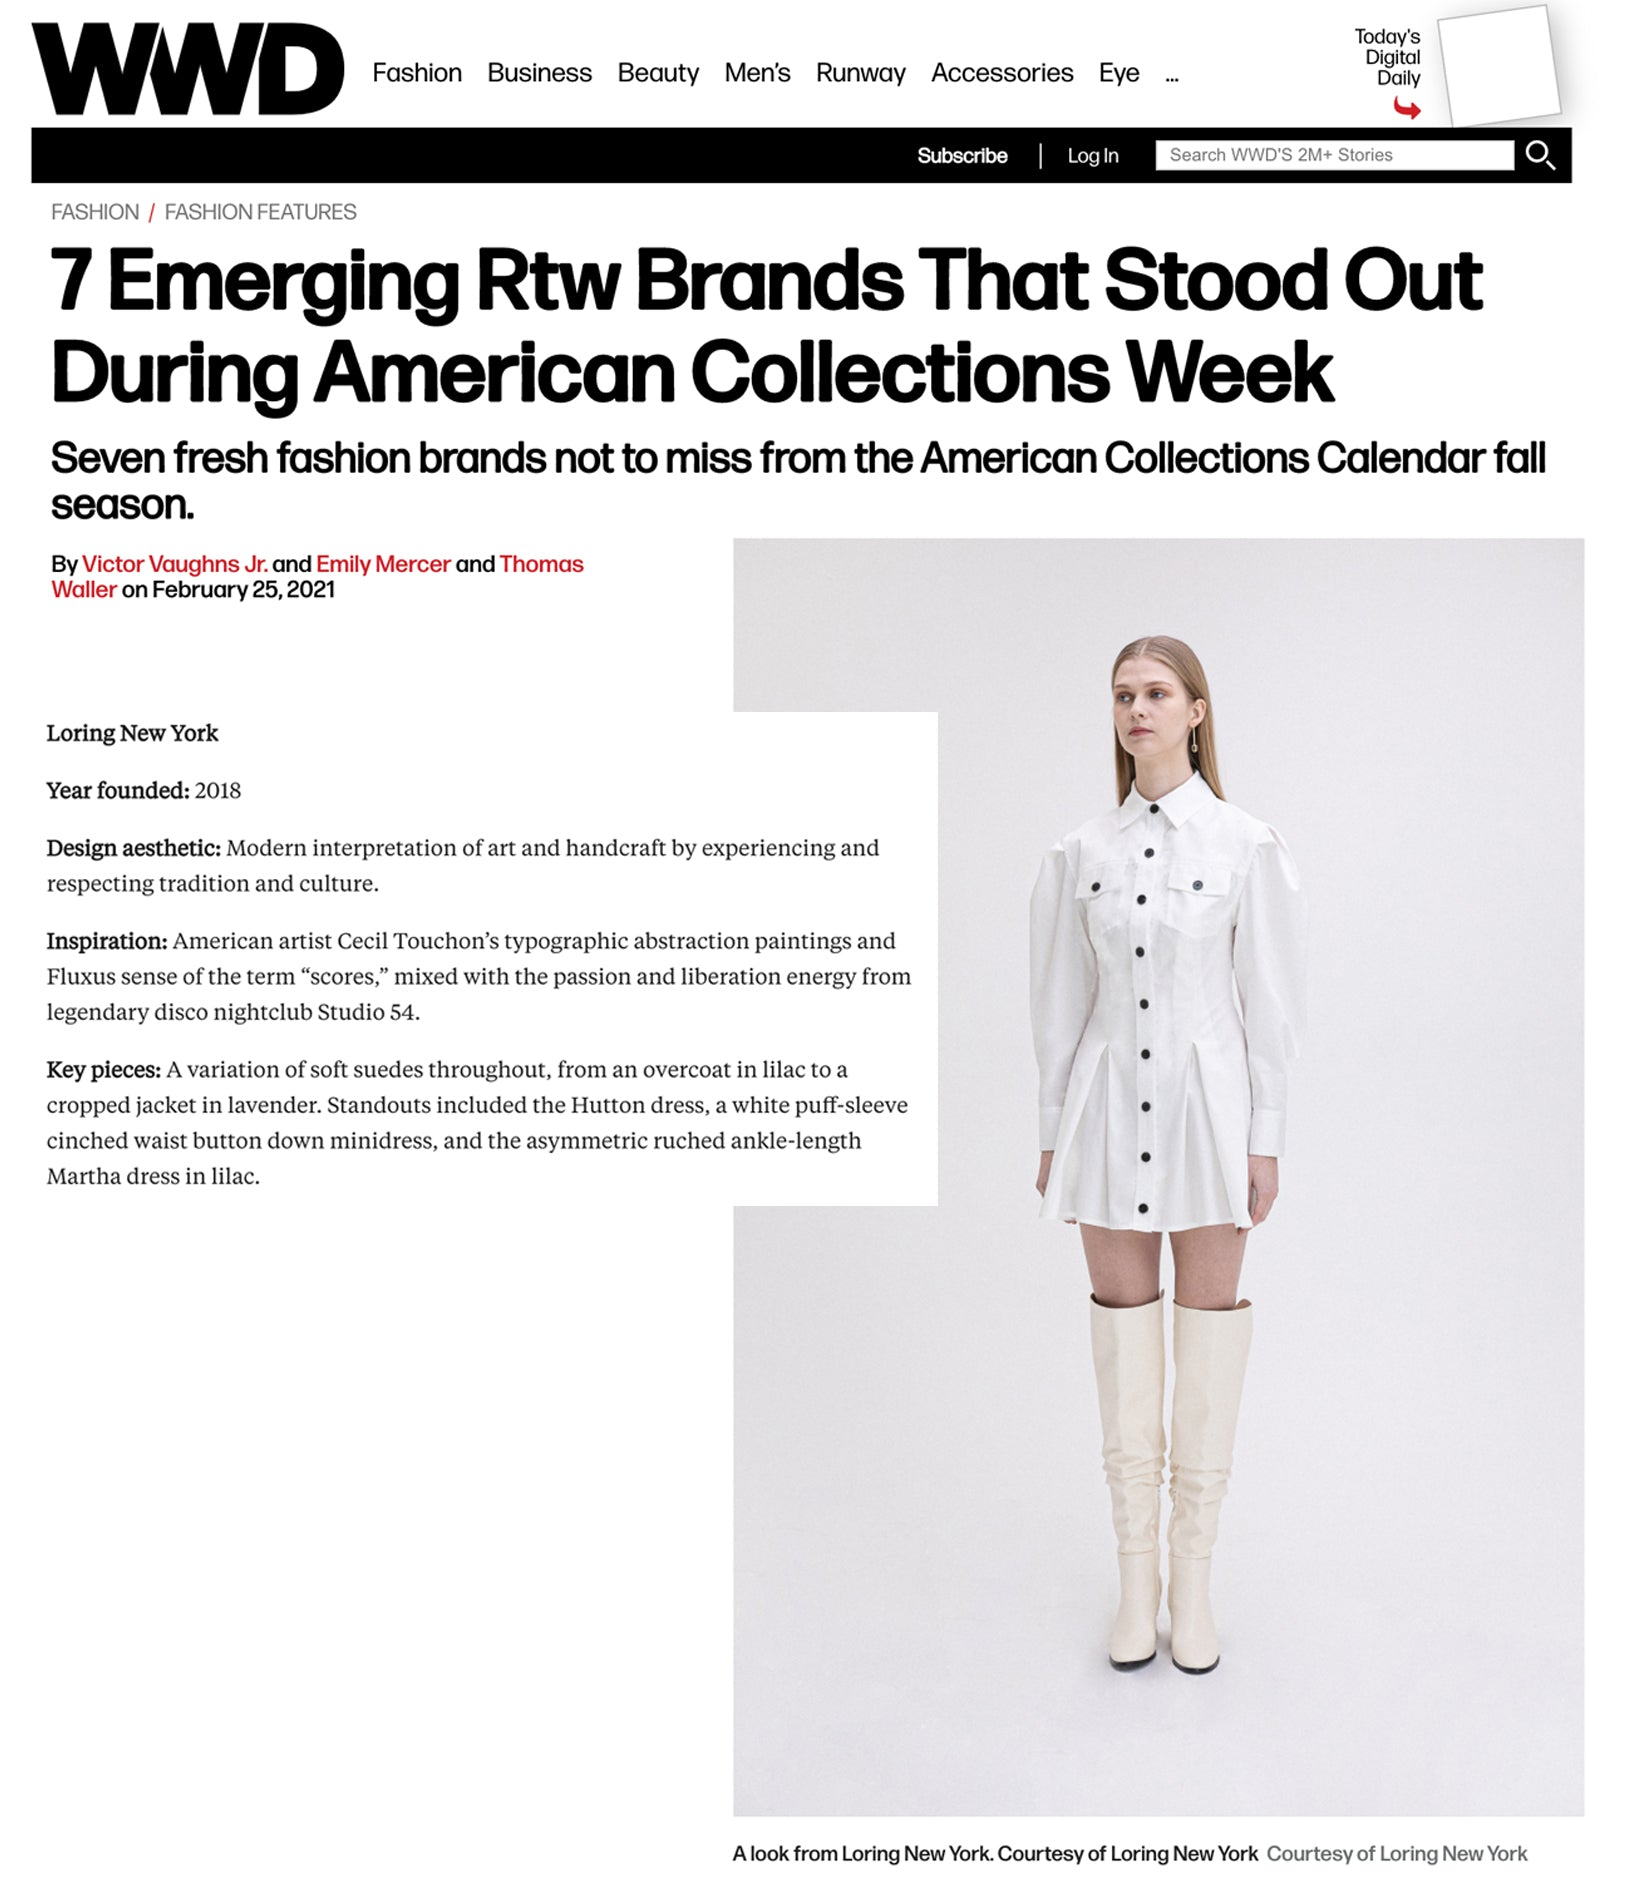 WWD - LORING NEW YORK - 7 Emerging Rtw Brands That Stood Out During American Collections Week